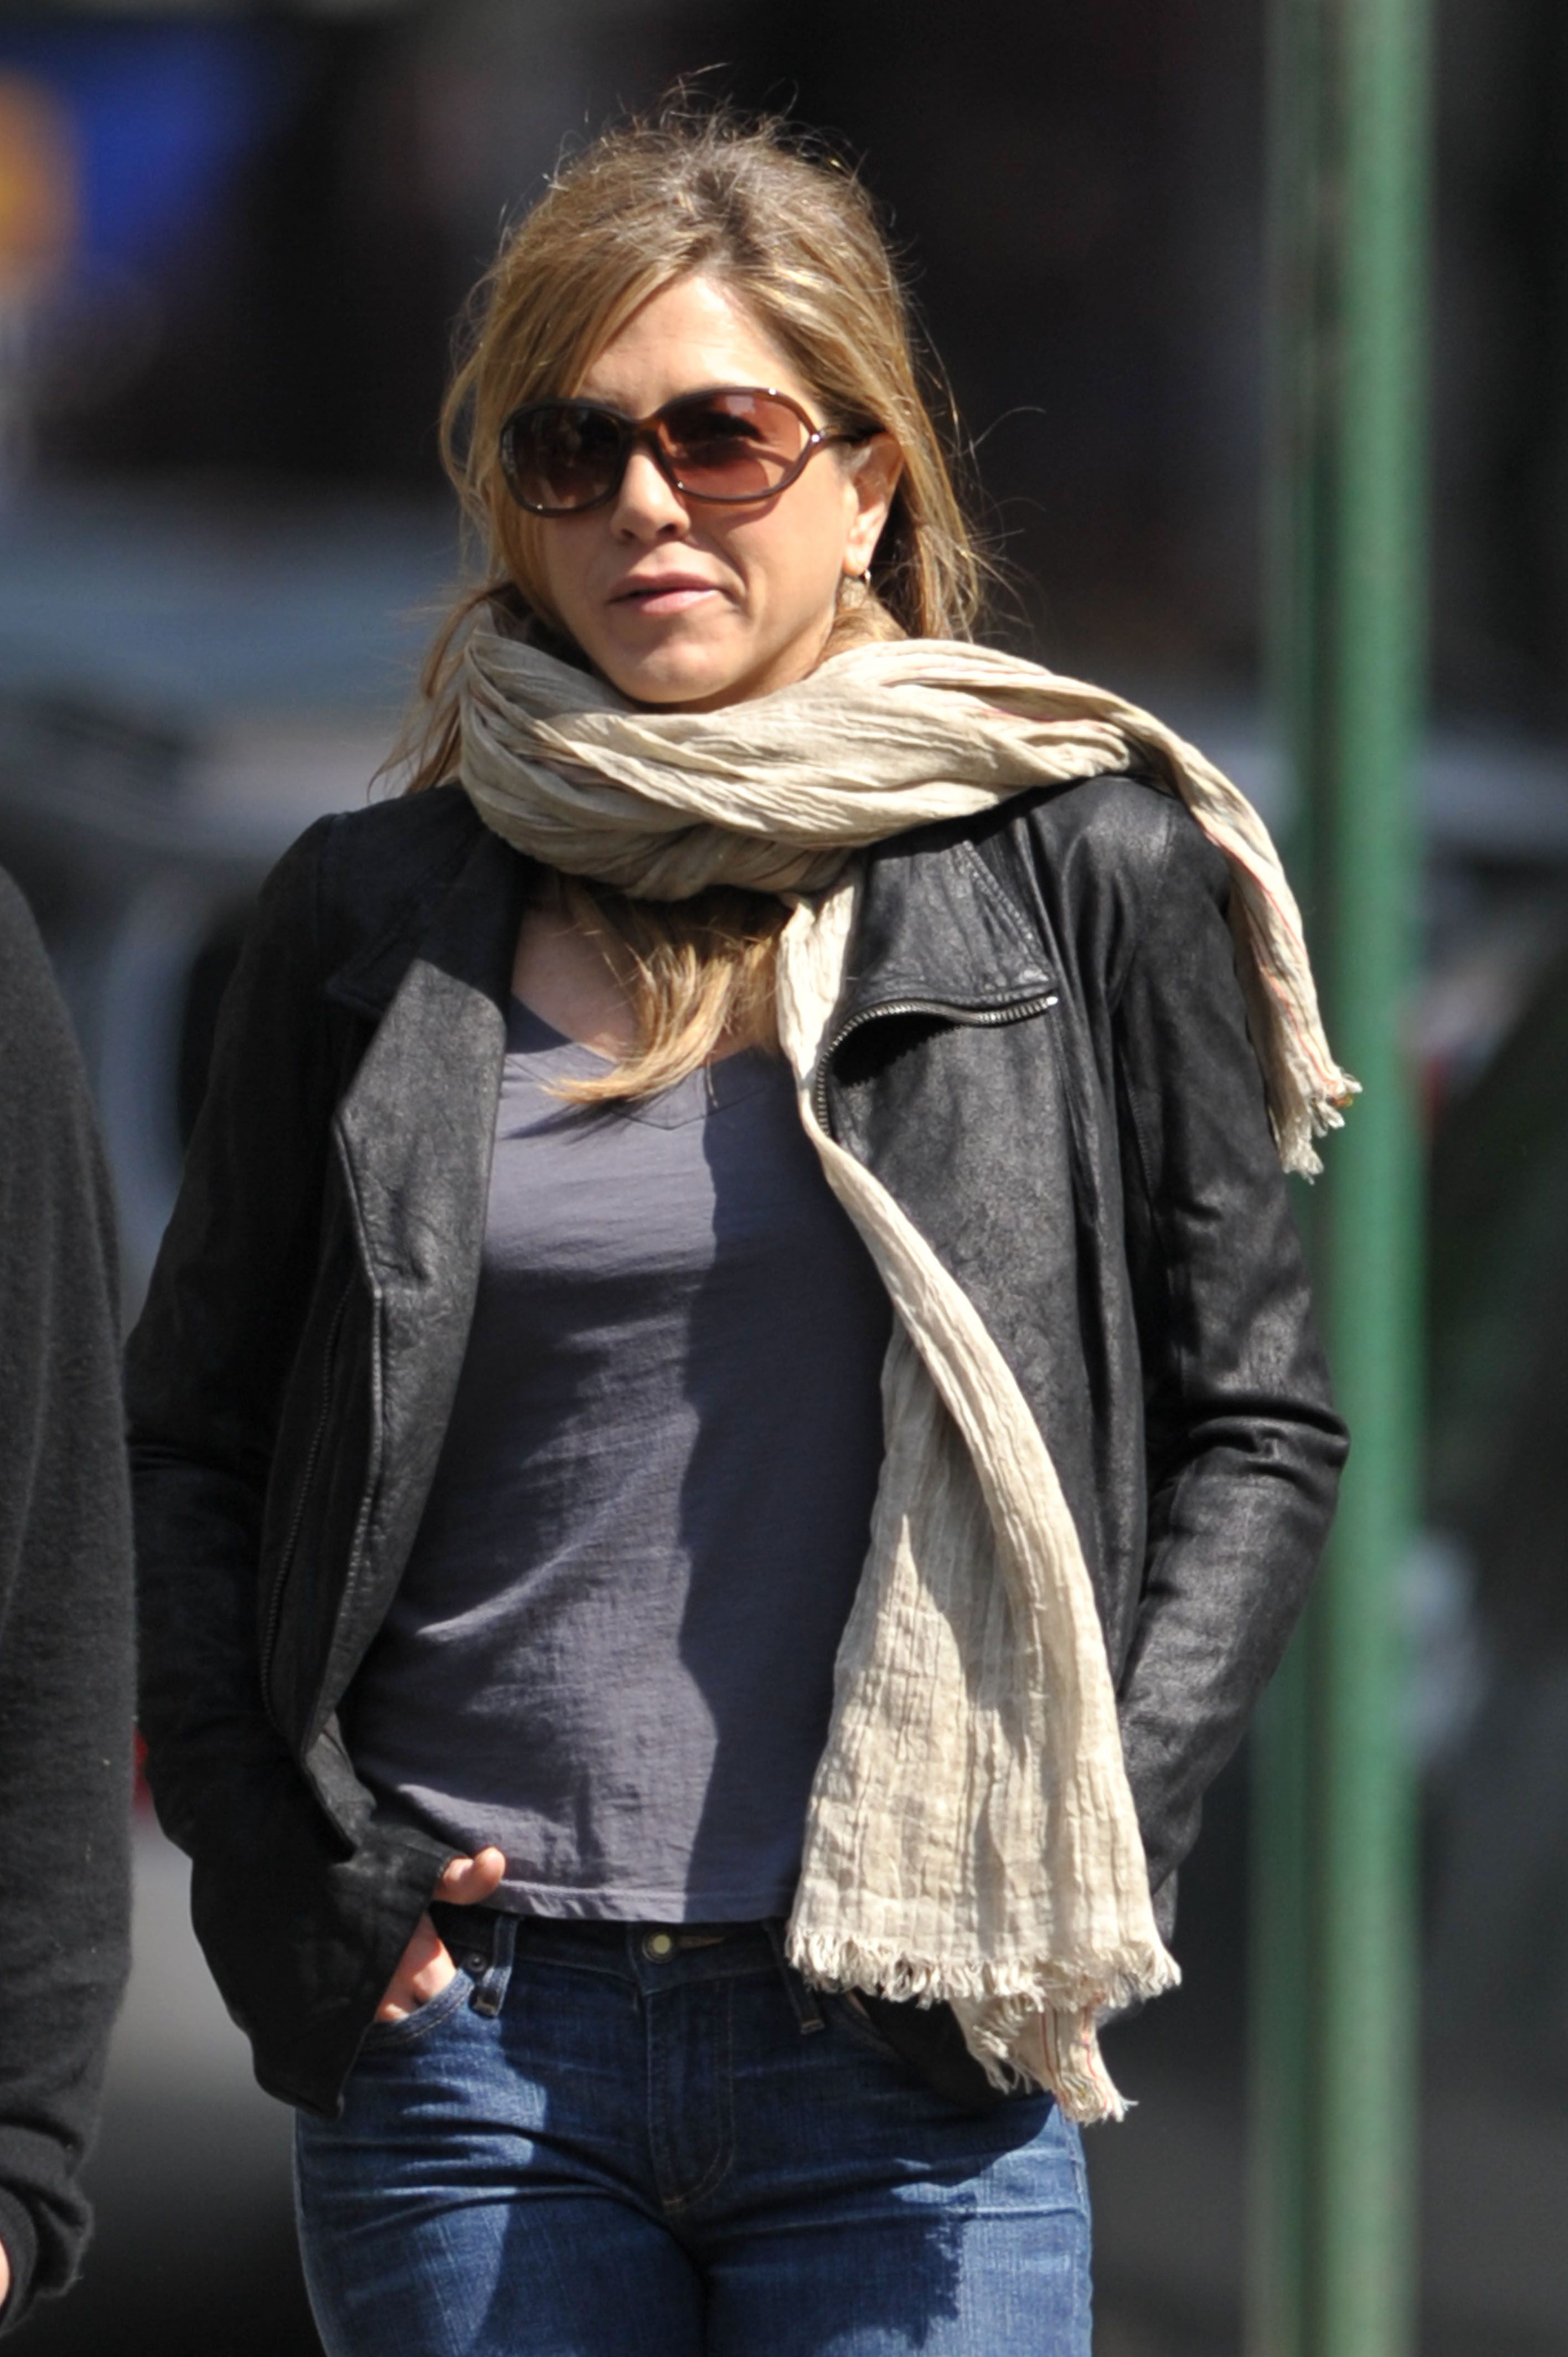 Jennifer Aniston Wearing Tom Ford Sunglasses